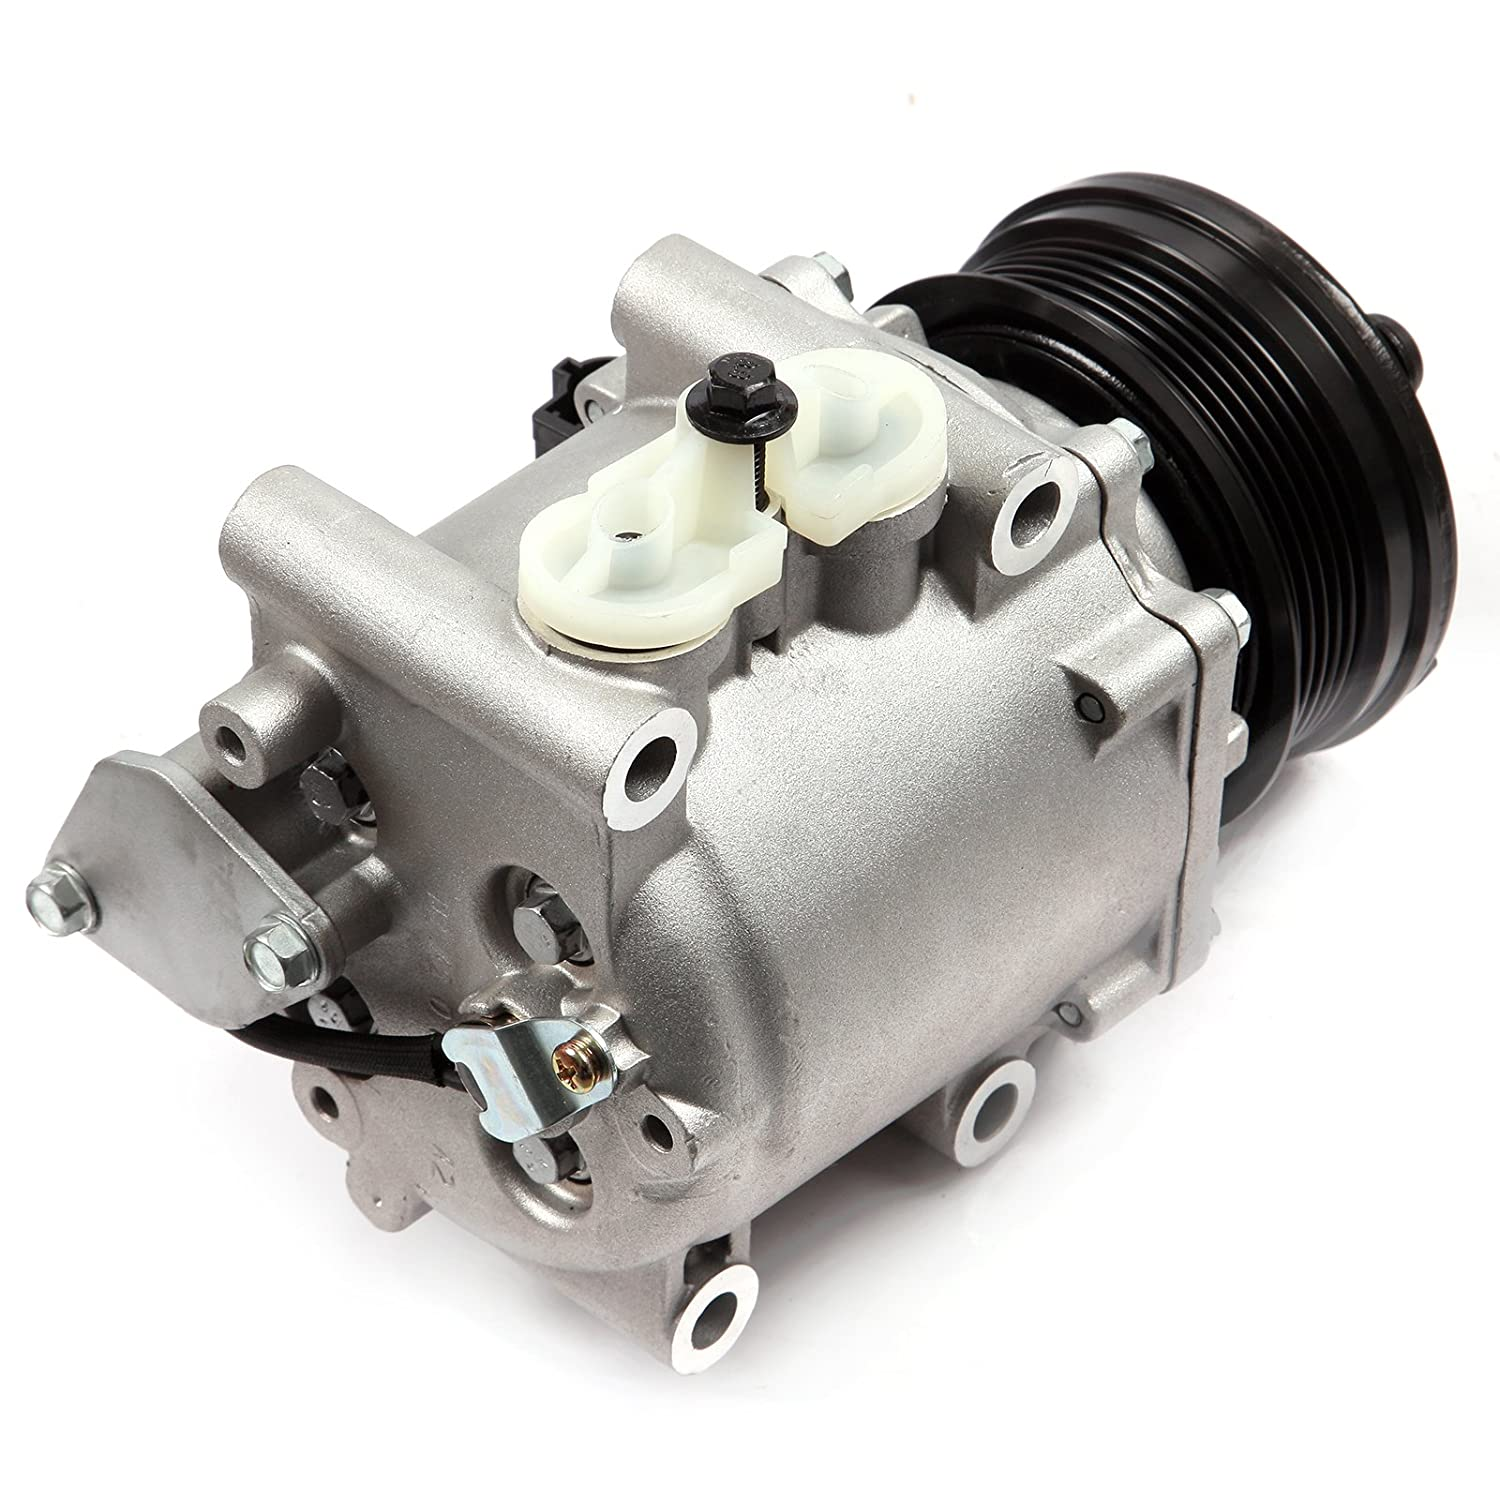 19D6290259A For 05-07 Ford 500 Freestyle 3.0L A//C Compressor New CO 10851AC